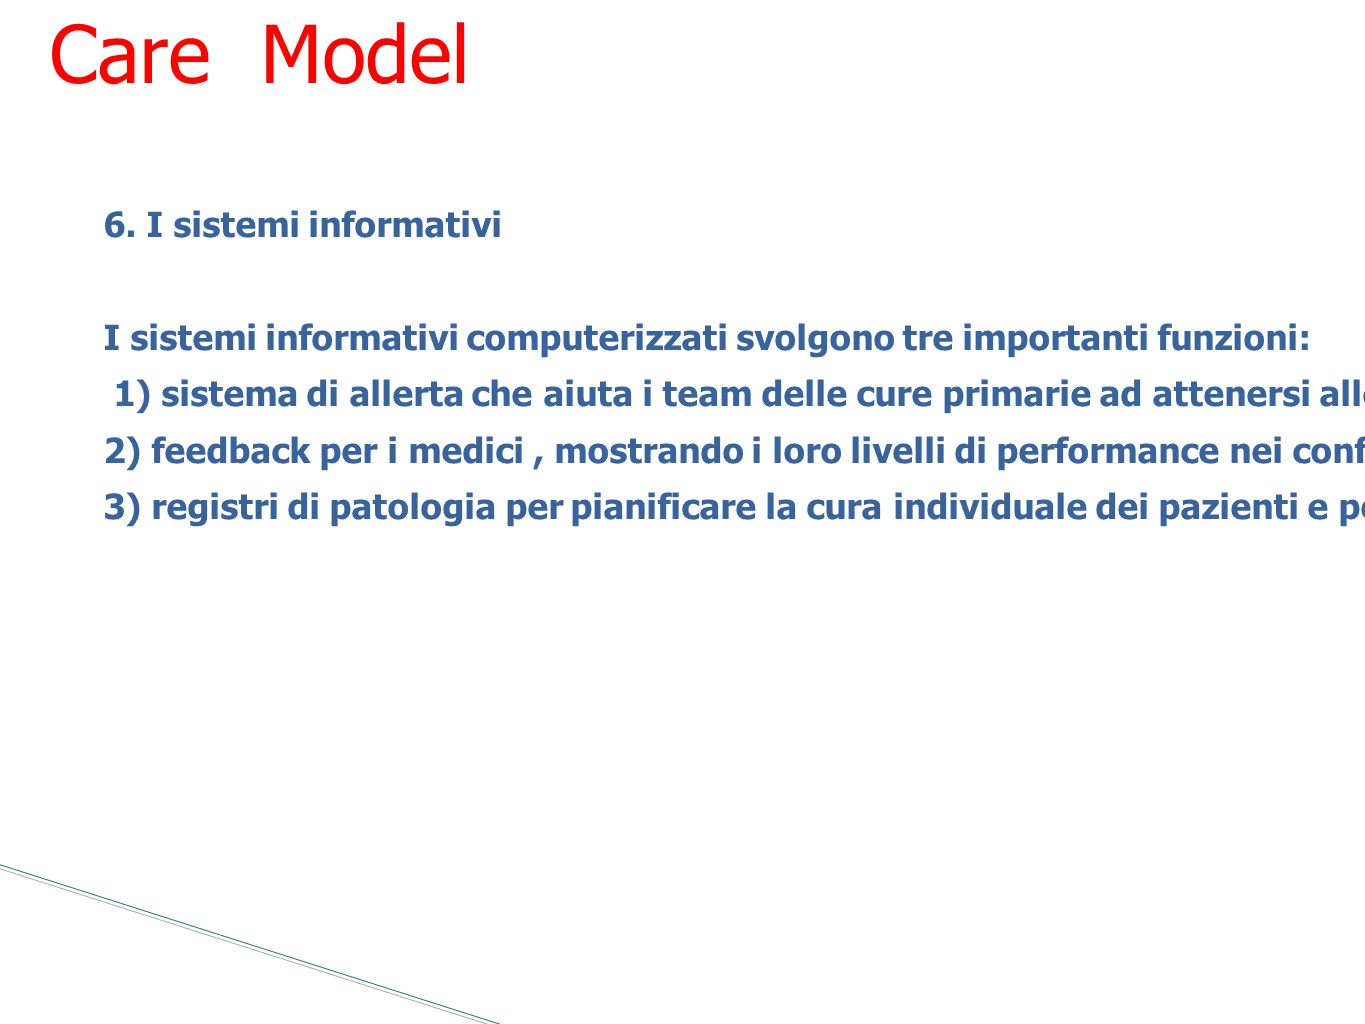 Chronic Care Model 6. I sistemi informativi